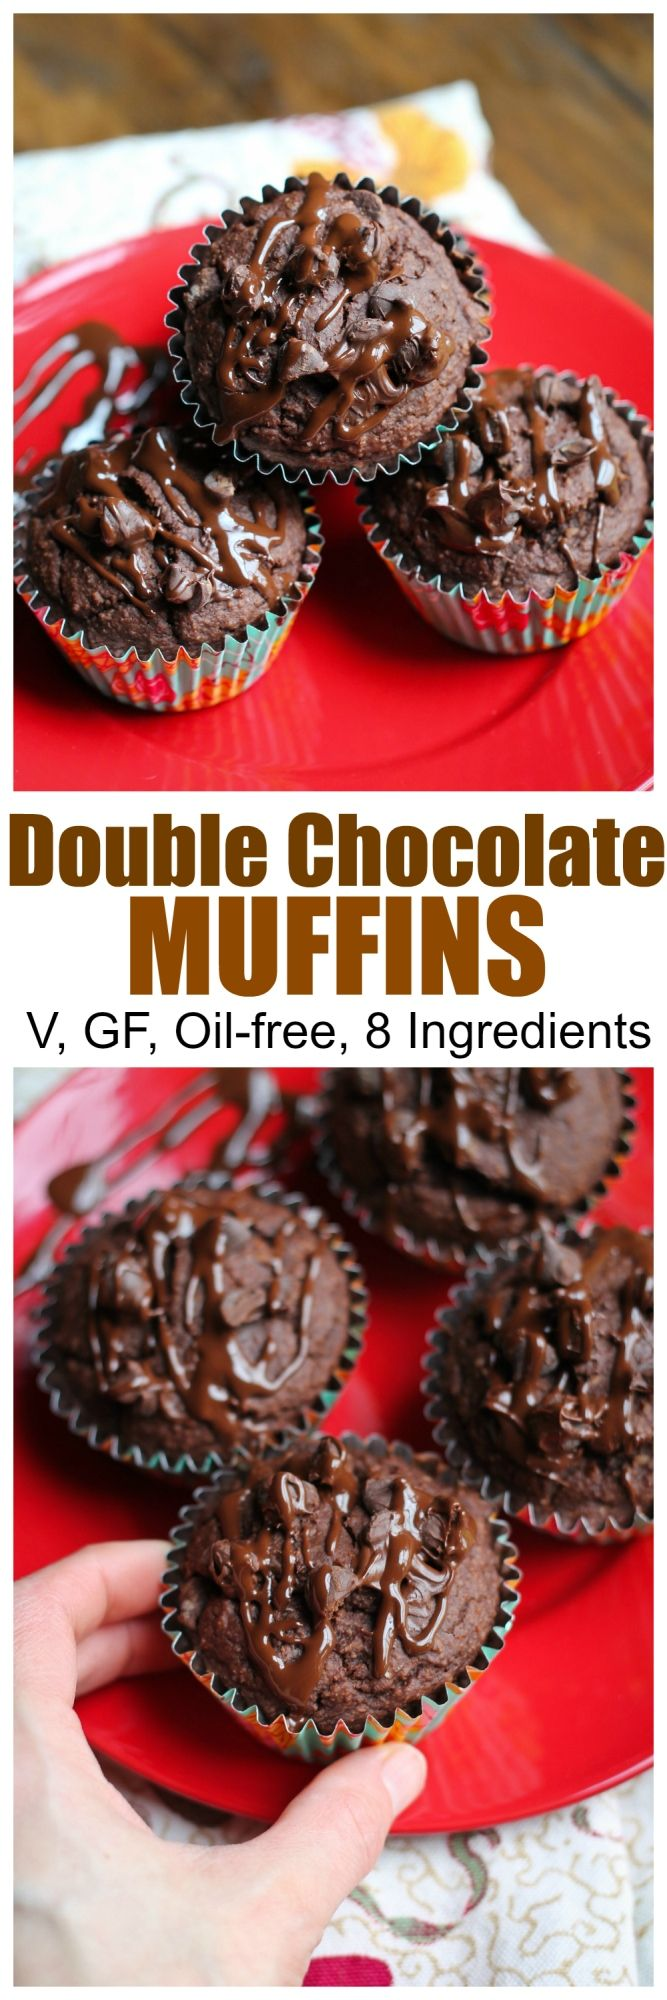 8 Ingredient Gluten-free Vegan Double Chocolate Muffins that are also oil-free and just 1 bowl! SO good and easy to make. Moist, rich and super chocolatey |